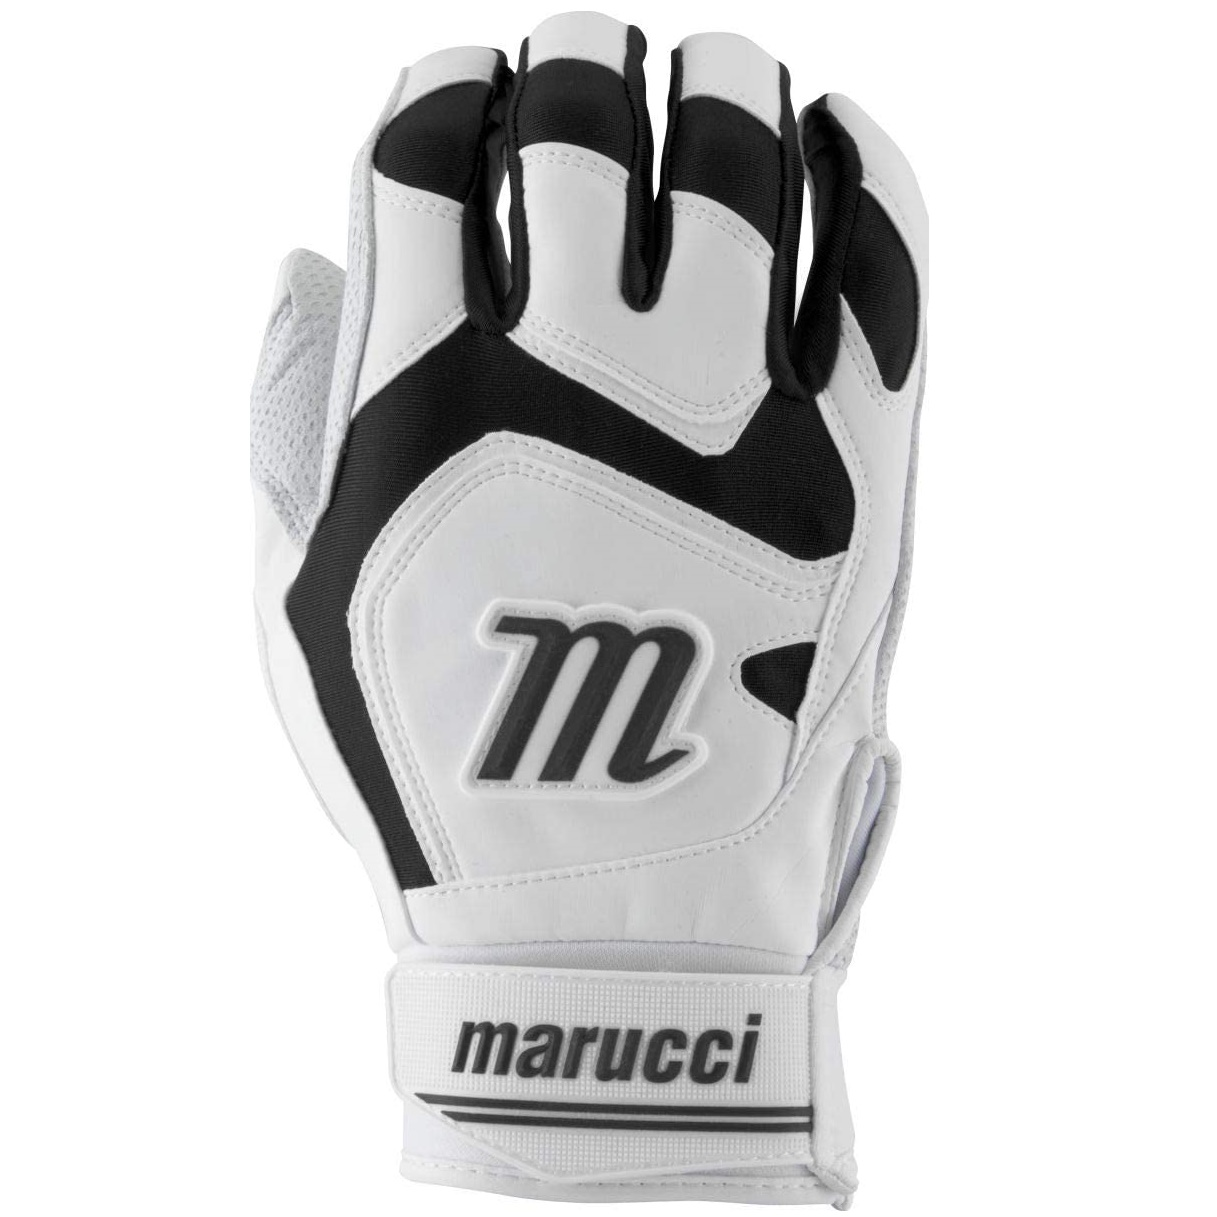 marucci-signature-youth-batting-gloves-black-youth-large MBGSGN2Y-BKW-YL Marucci  Digitally embossed perforated Cabretta sheepskin palm provides maximum grip and durability